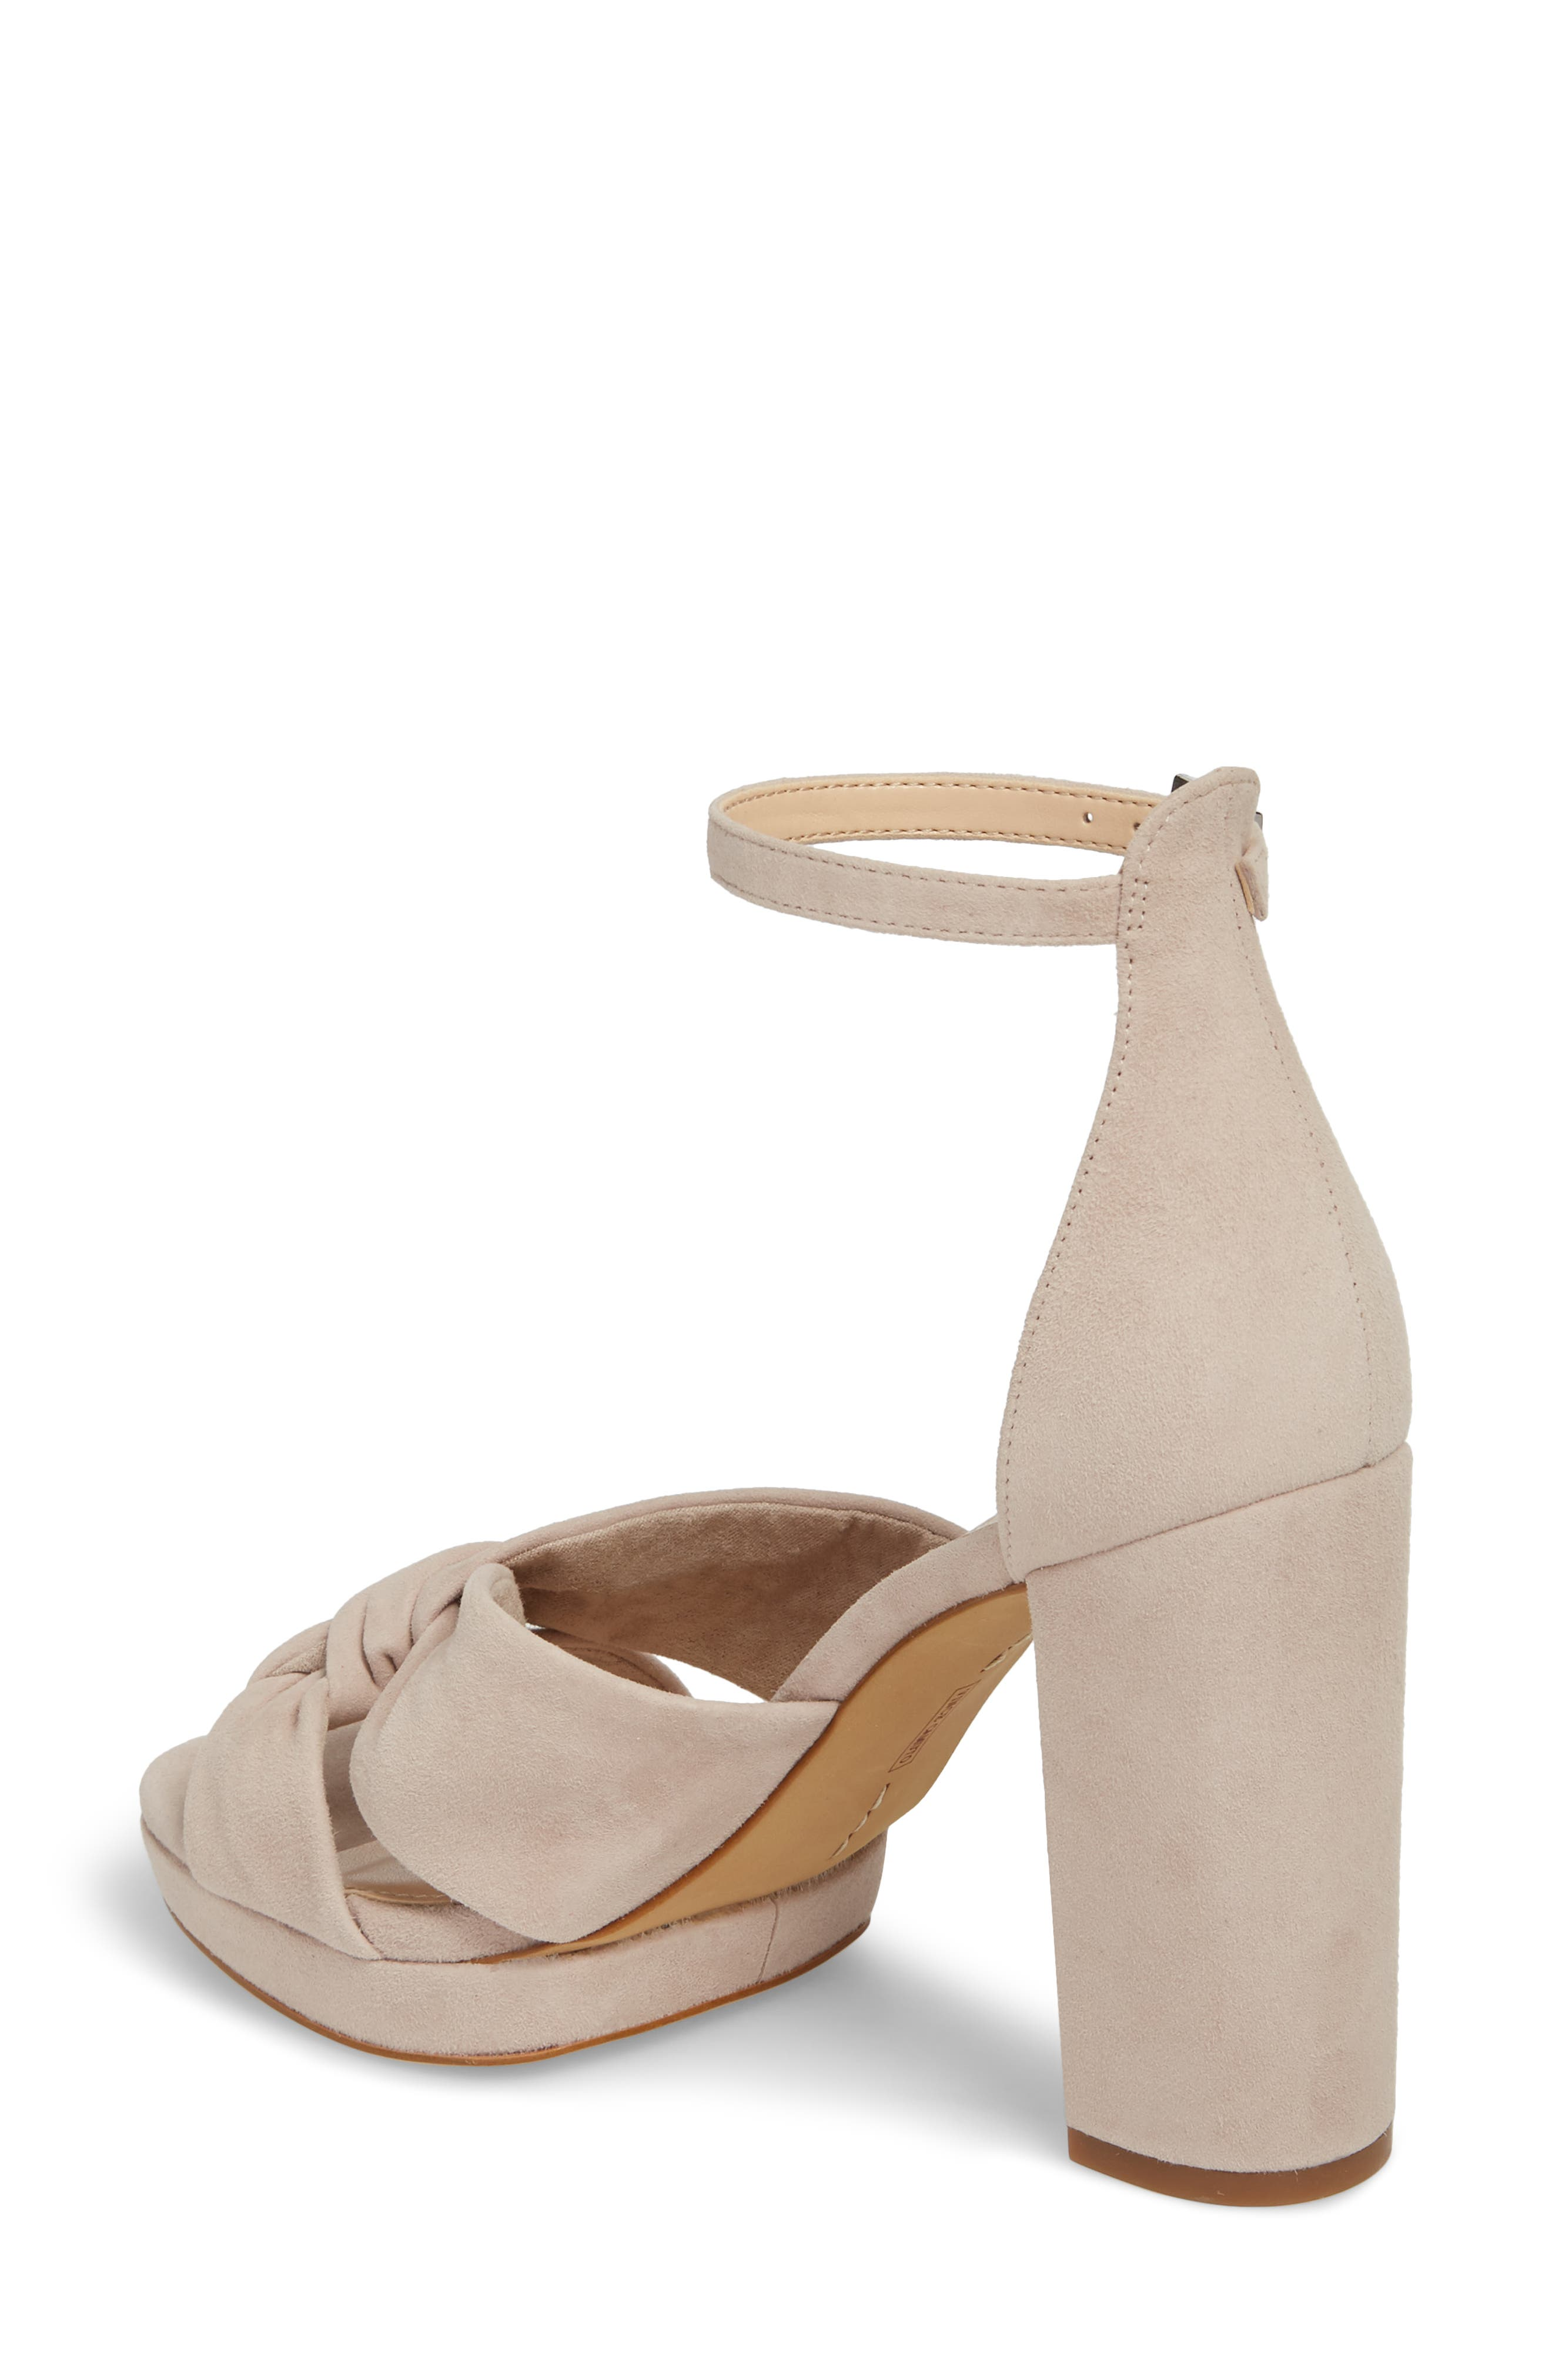 Corlesta Sandal,                             Alternate thumbnail 2, color,                             TIPSY TAUPE SUEDE